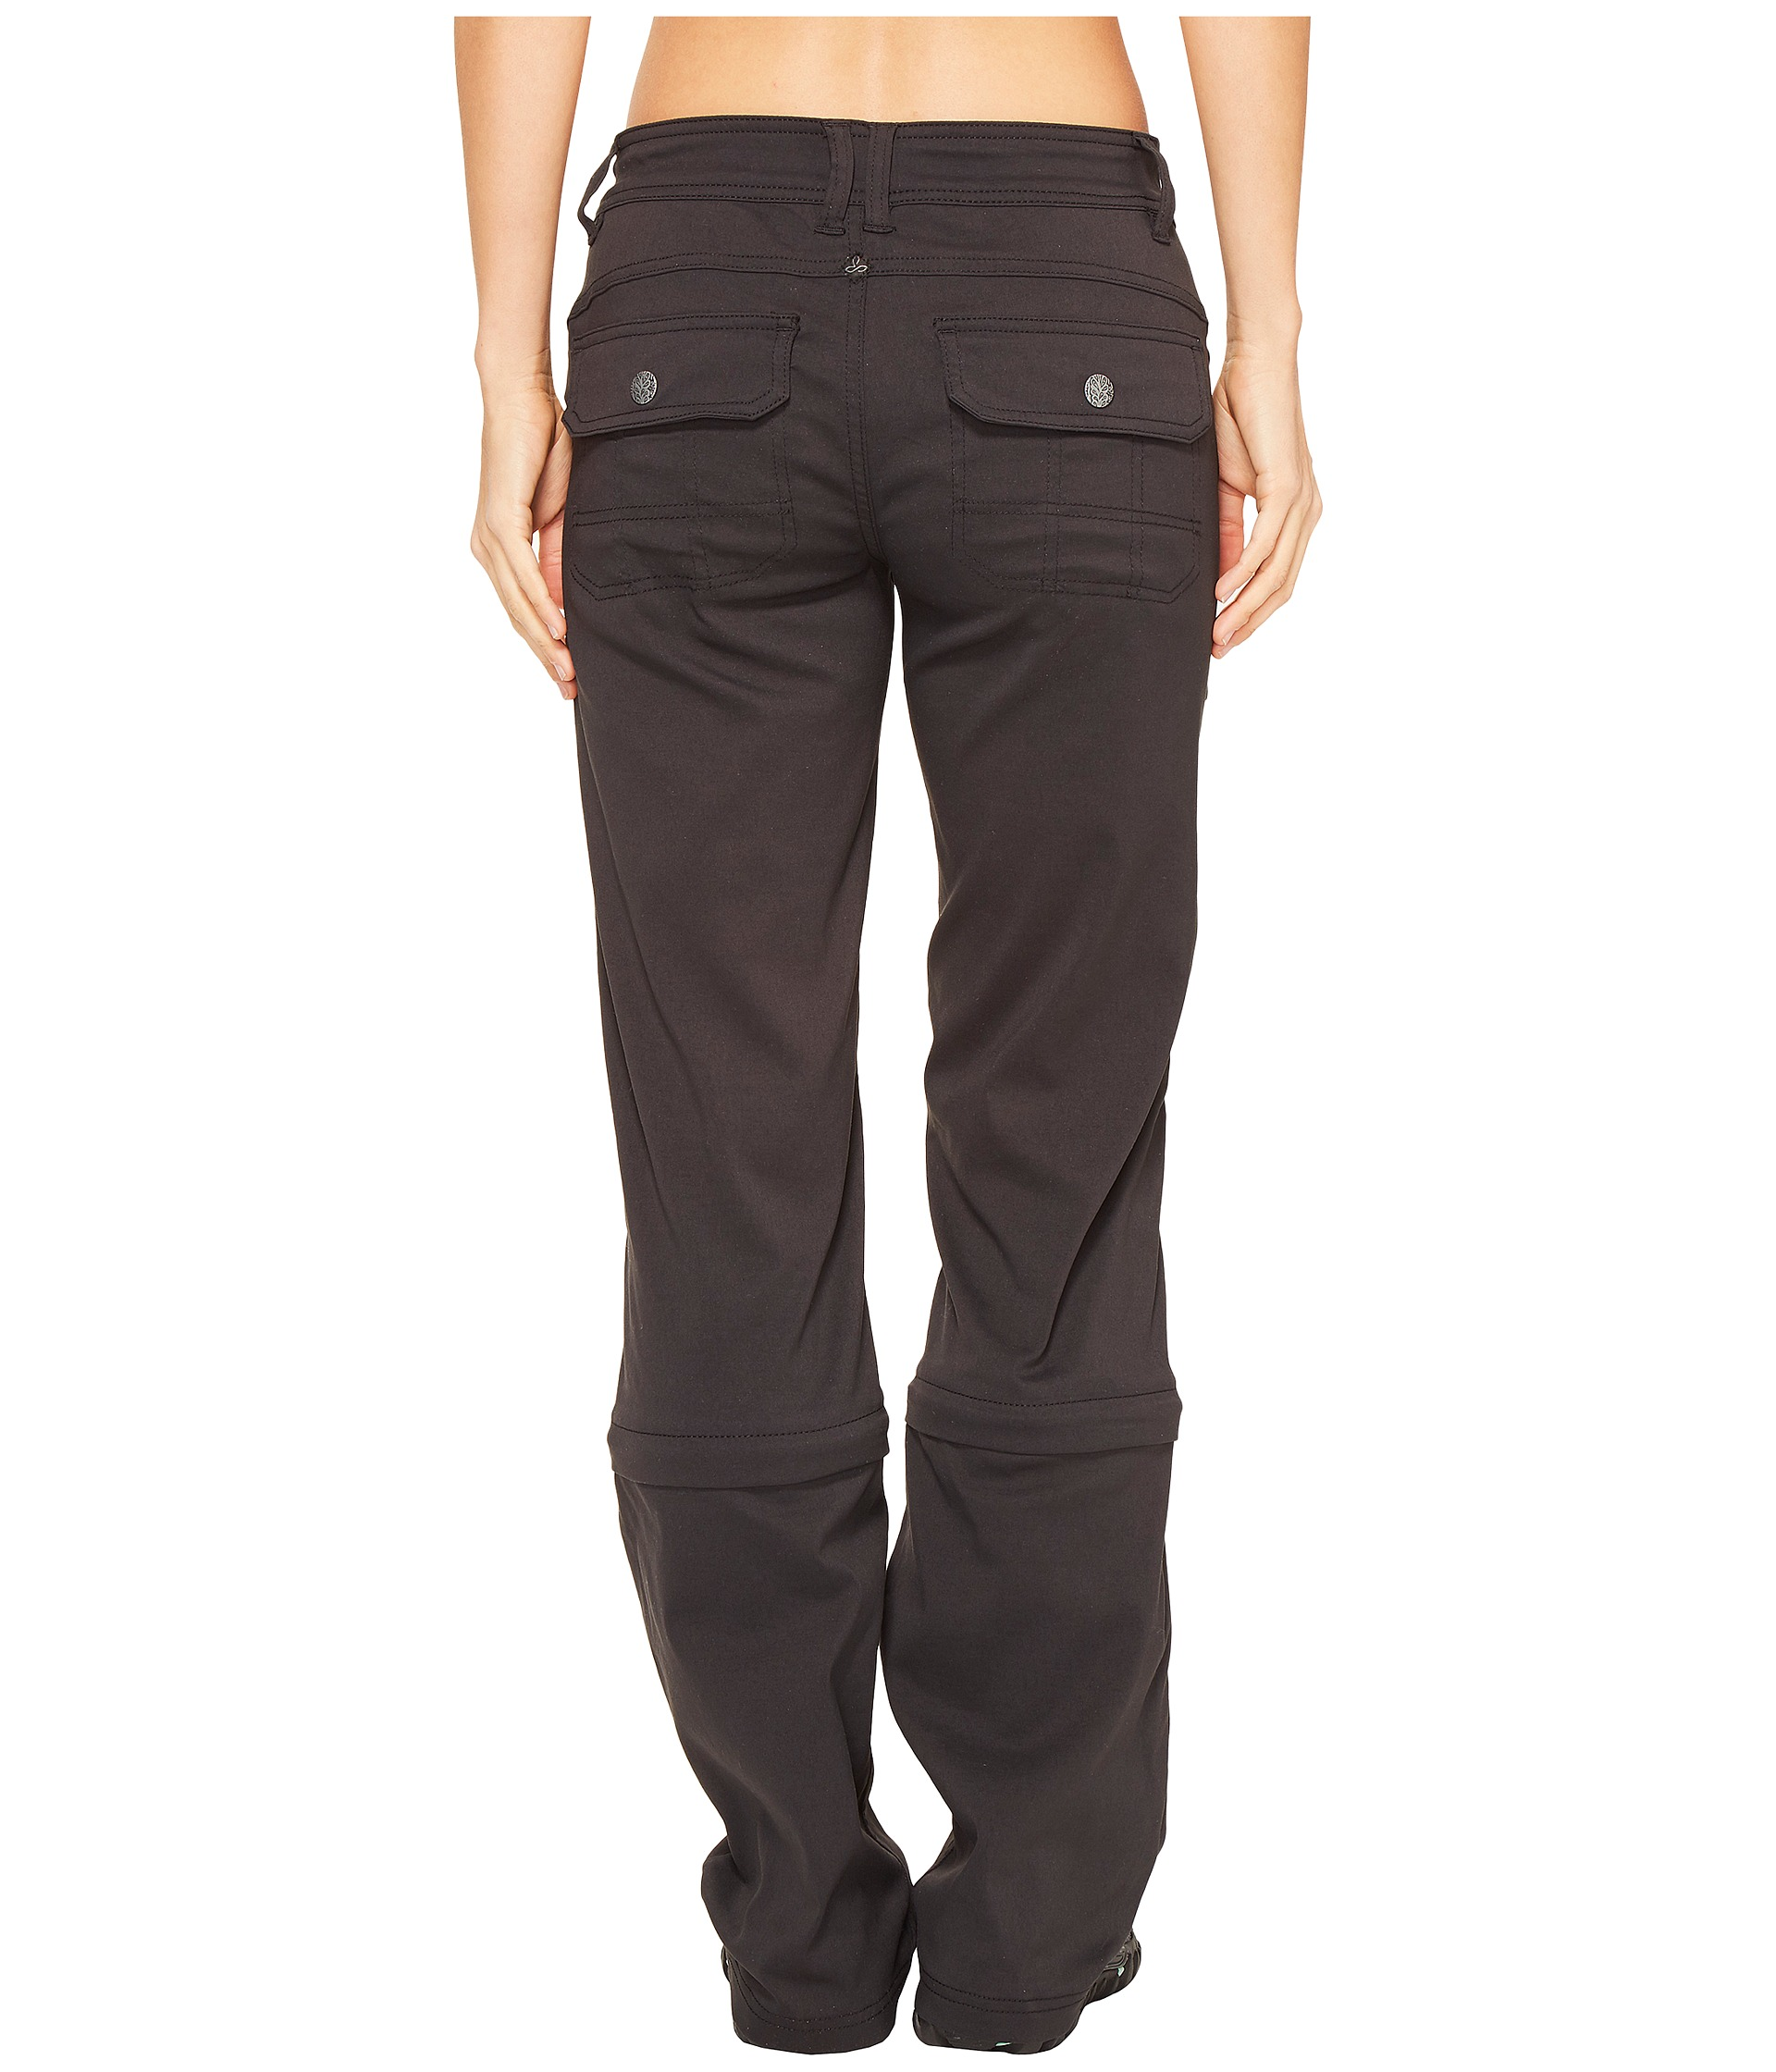 Prana Halle Convertible Pants At Zappos Com